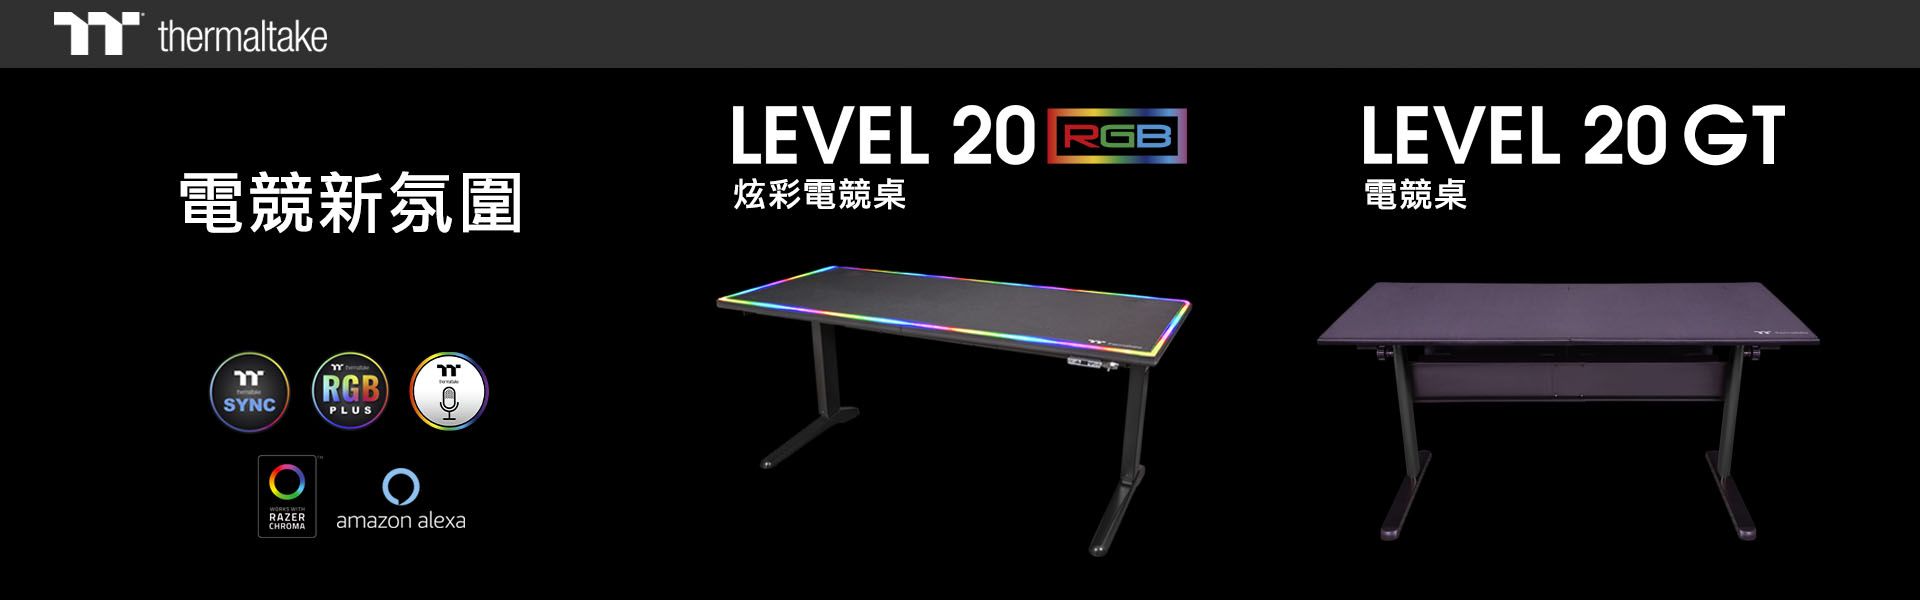 曜越CES 2019展出Level 20 RGB和Level 20 GT BattleStation電競桌_1